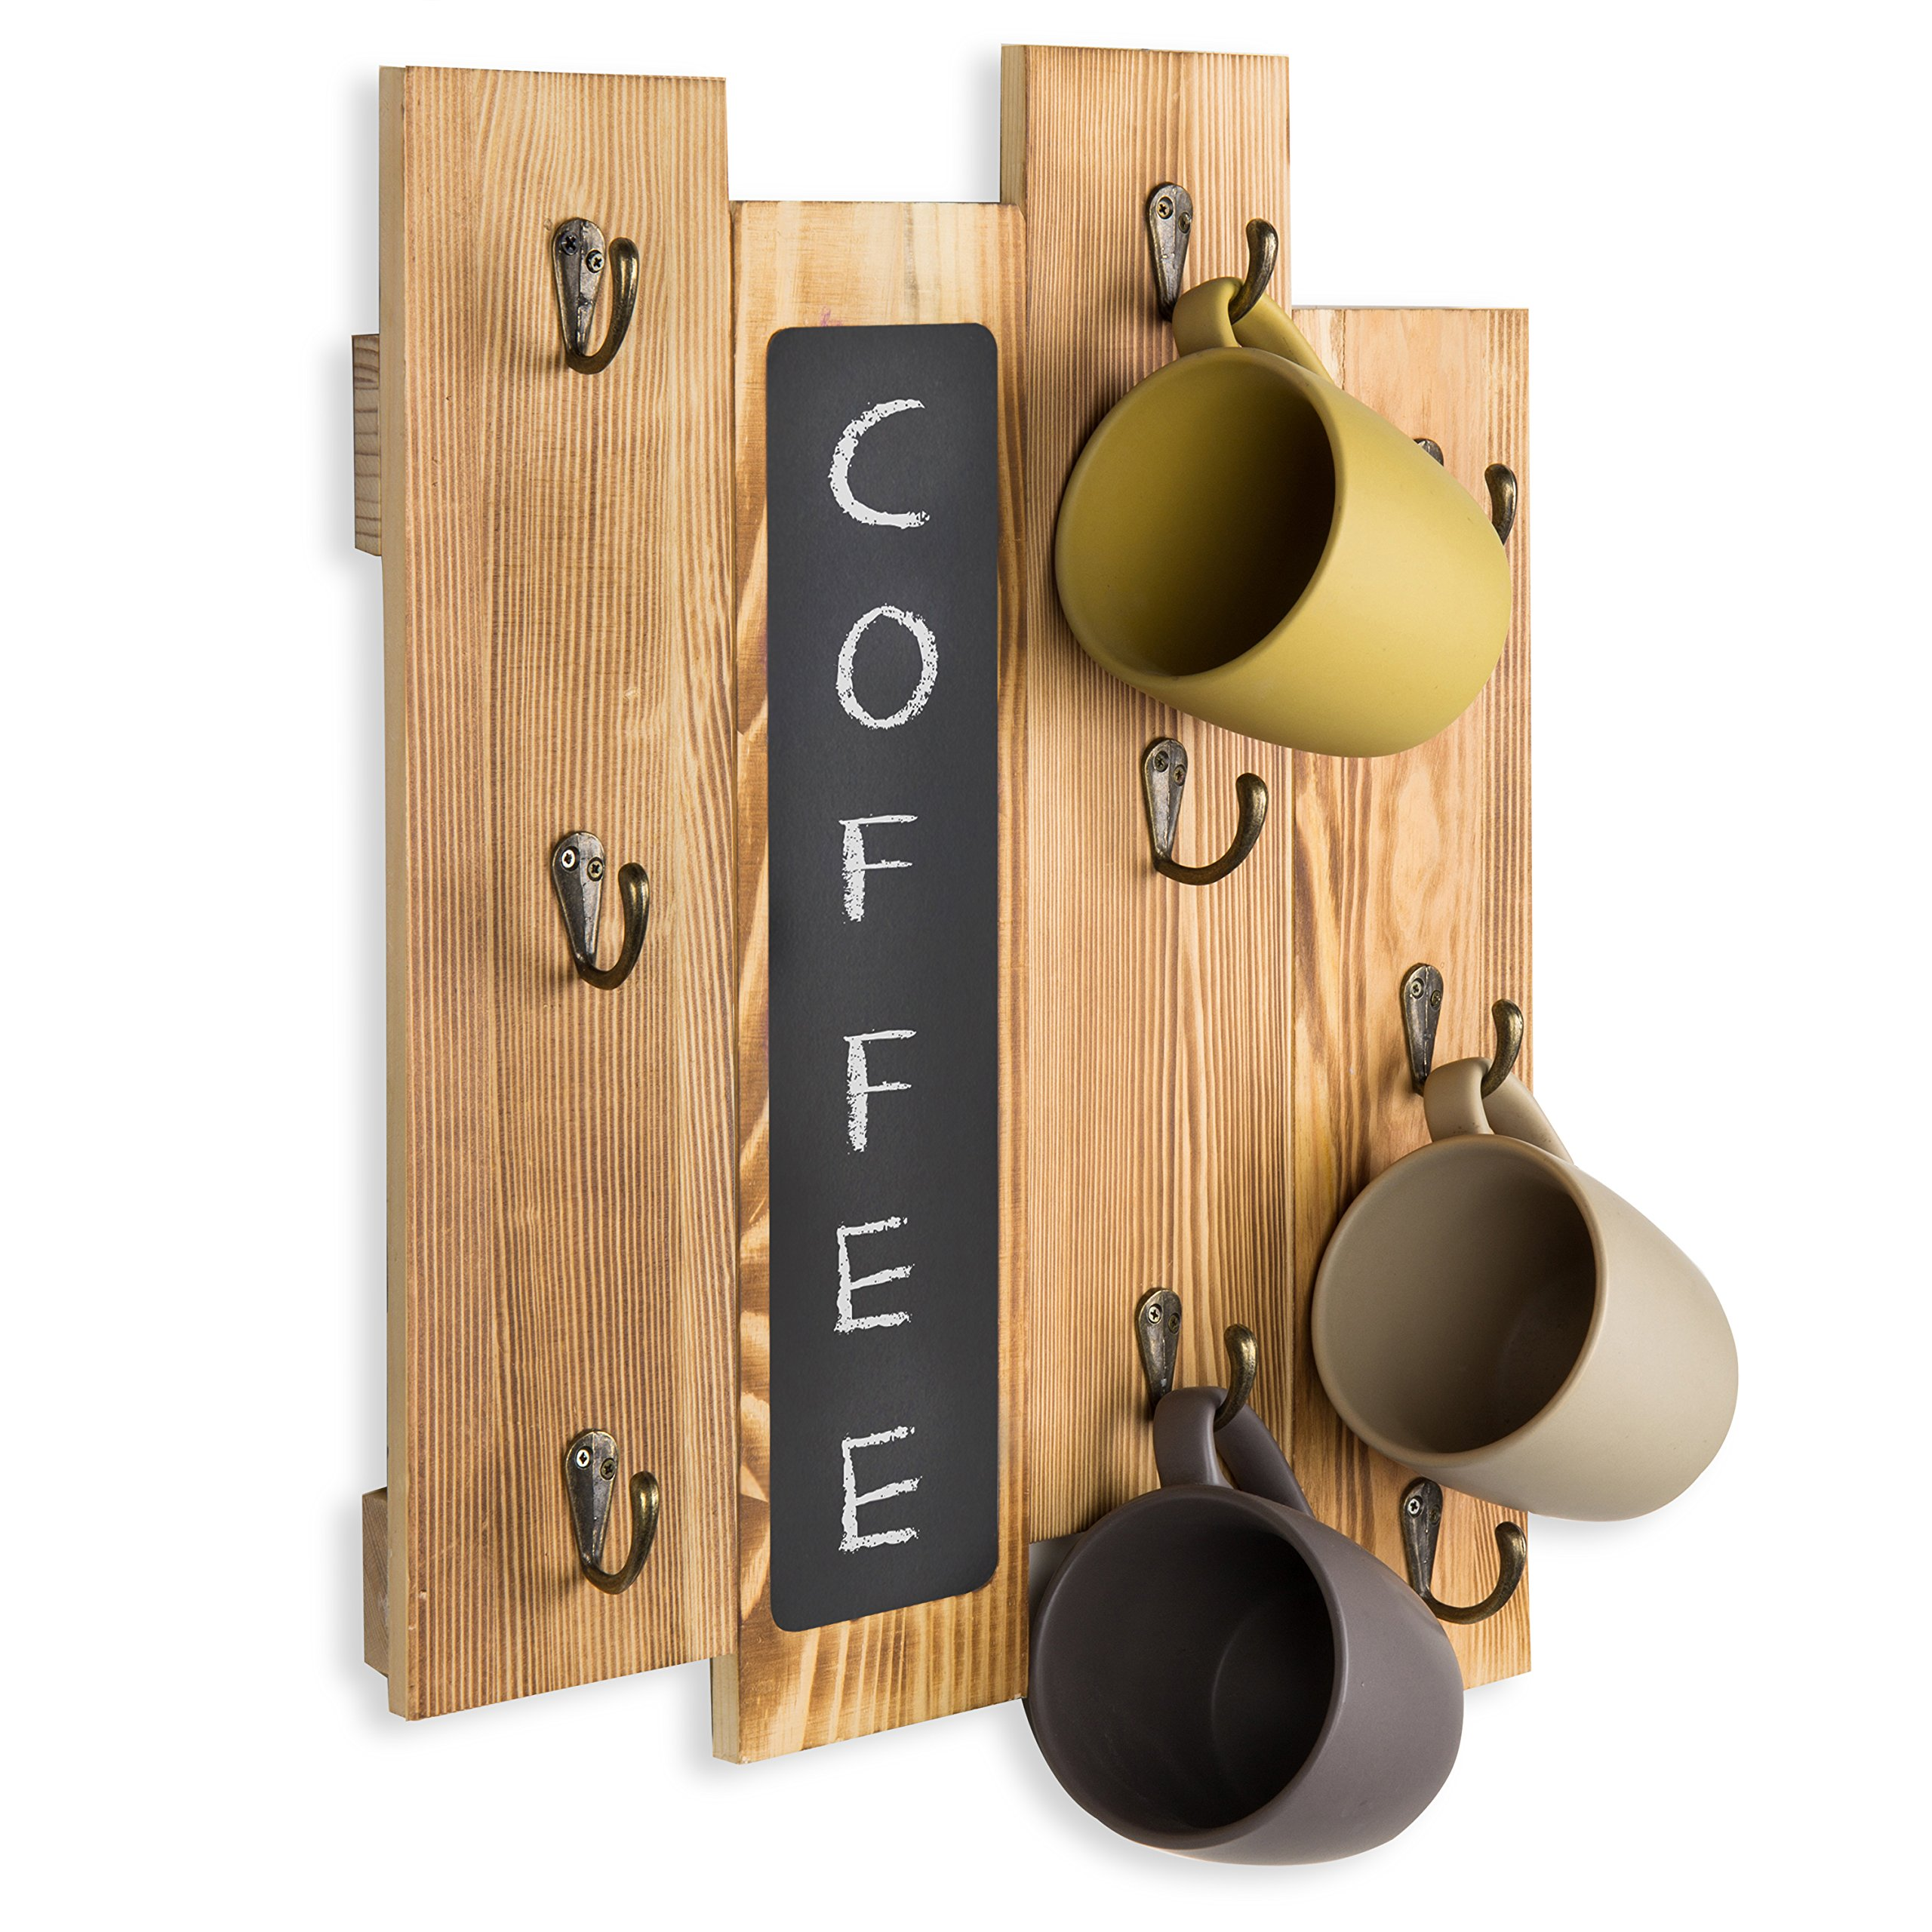 MyGift 9-Hook Torched Wood Wall-Mounted Coffee Mug Rack with Chalkboard by MyGift